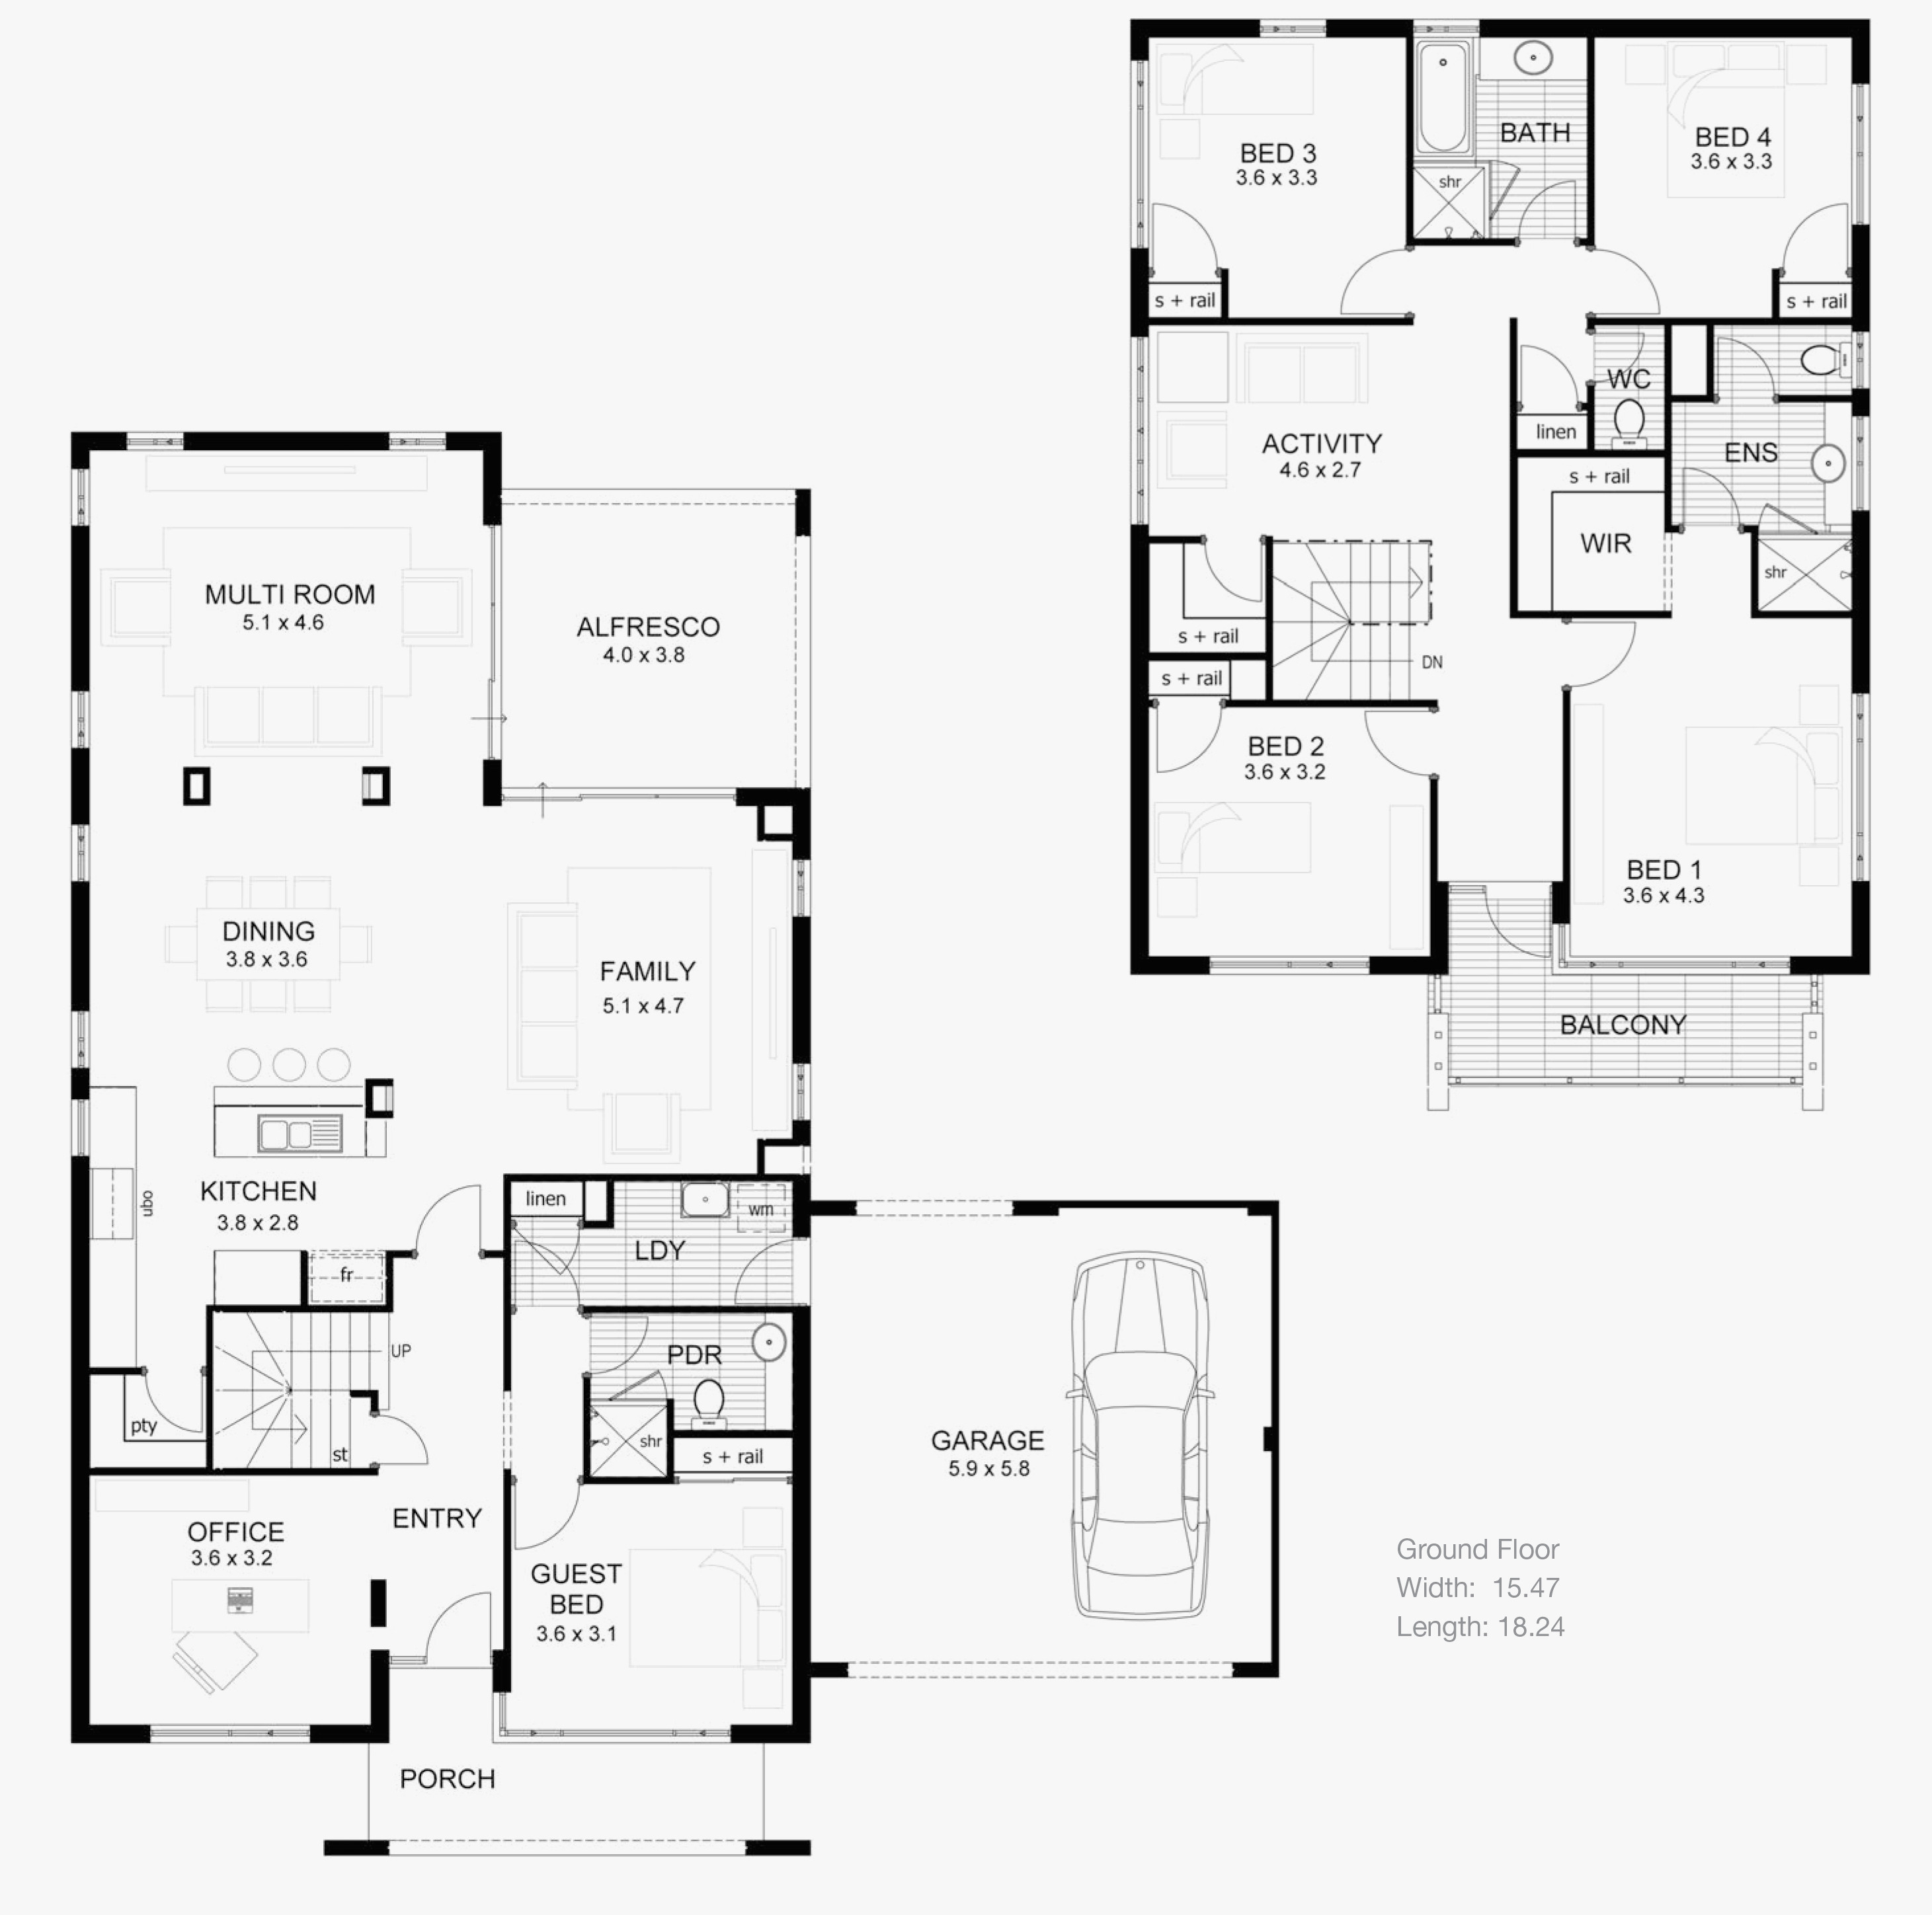 Two Story House Plans Luxury Modern 2 Bedroom House Plans for 11 Some of the Coolest Ideas How to Make Modern 2 Bedroom House Plans